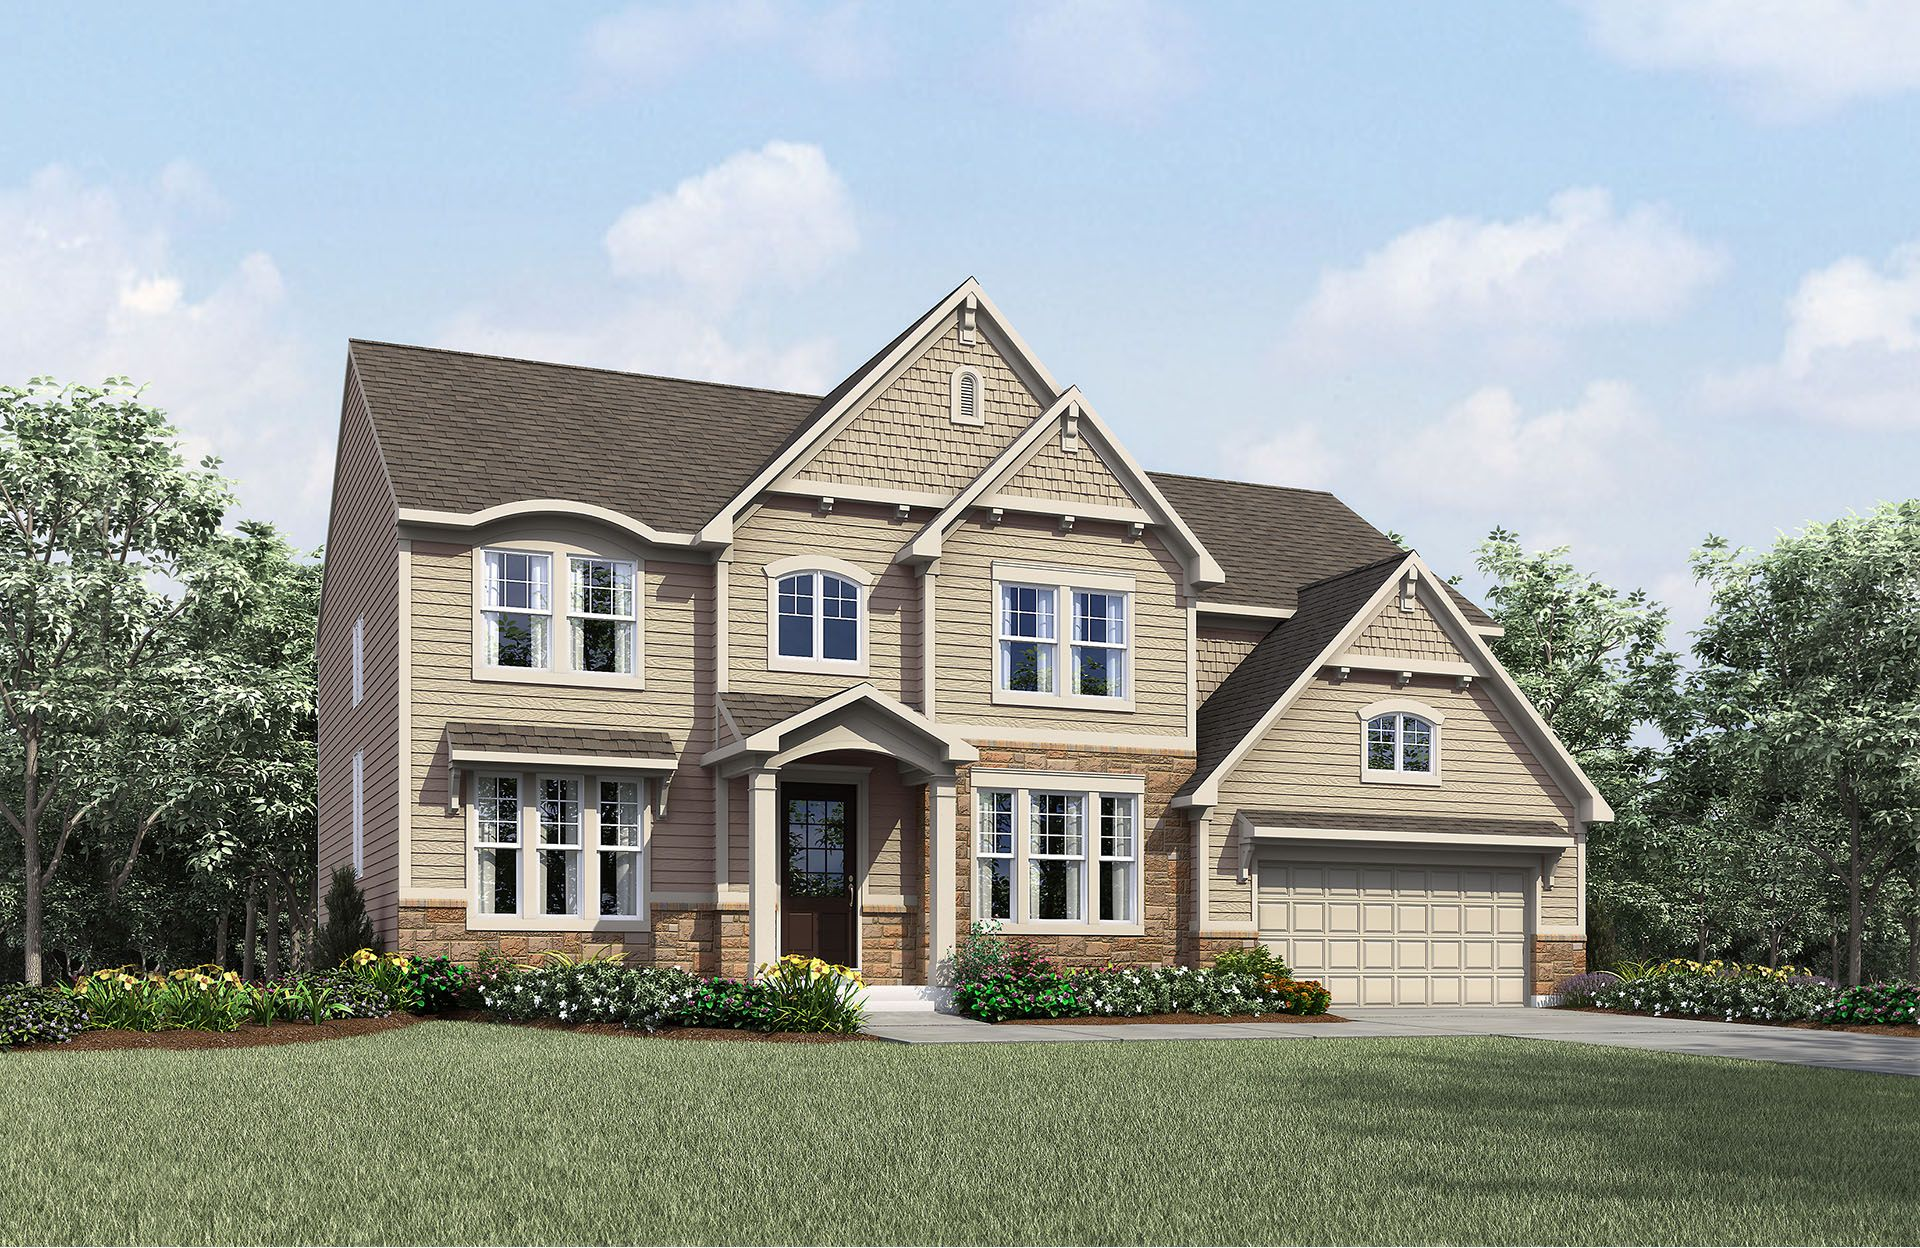 Single Family for Sale at Estates At Rocky Pen - Ash Lawn 85 Edgewater Drive Falmouth, Virginia 22405 United States